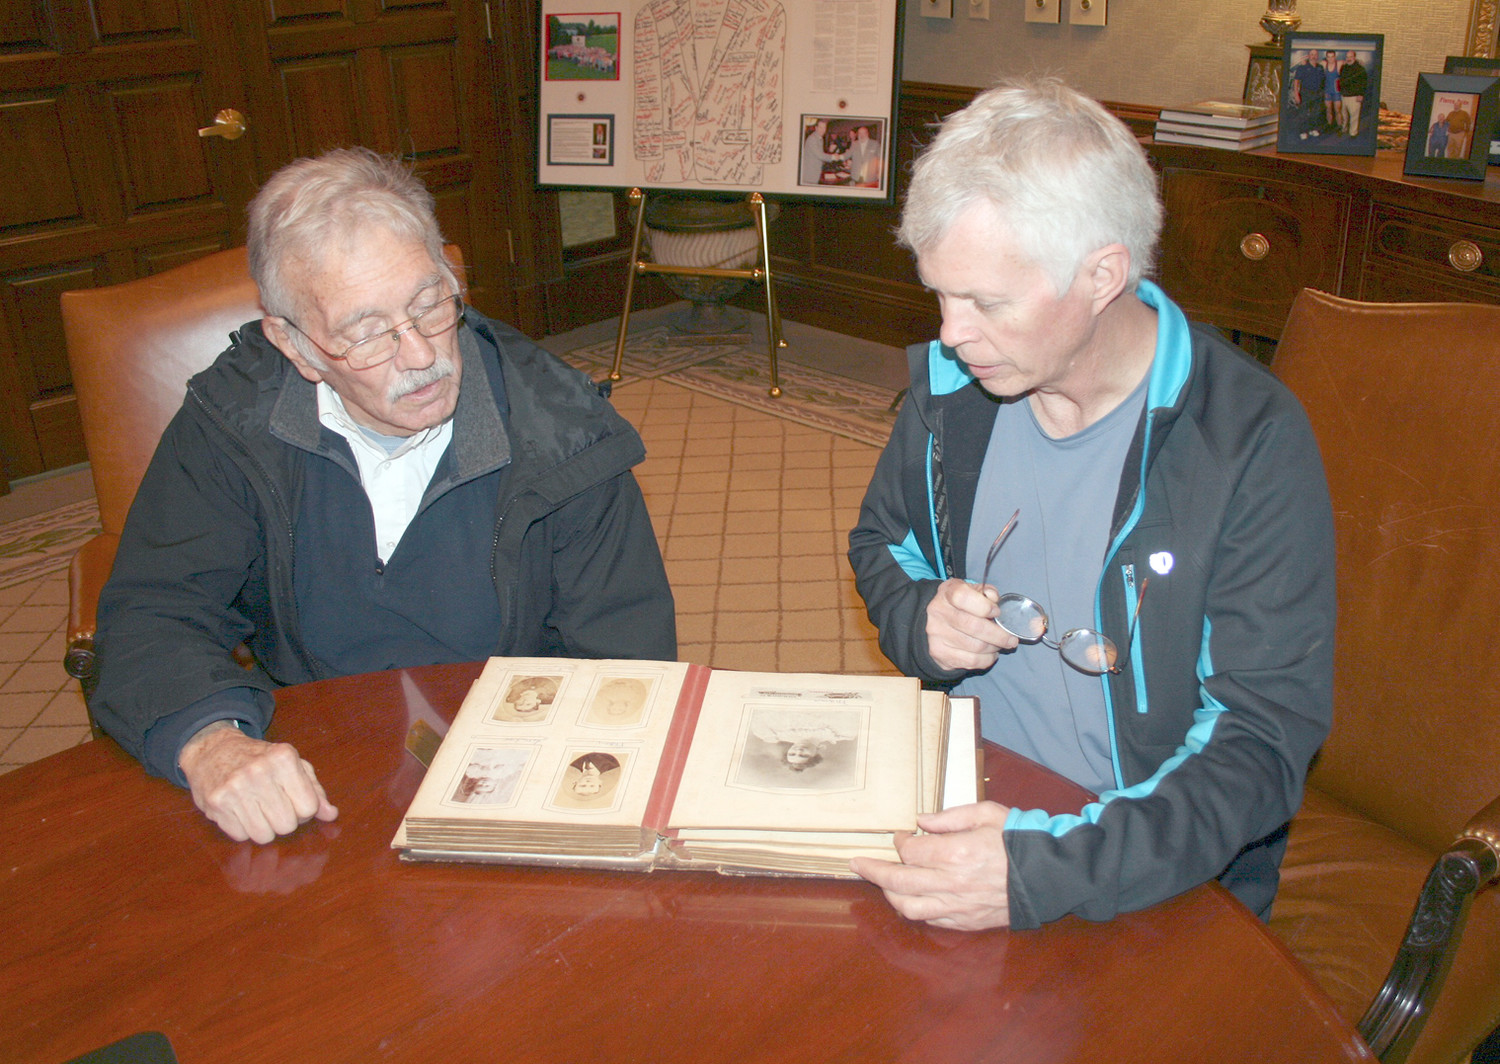 Charlie Corn, left, and Mitchell Guinn, right, look over one of the two newly discovered Hardwick family albums together.